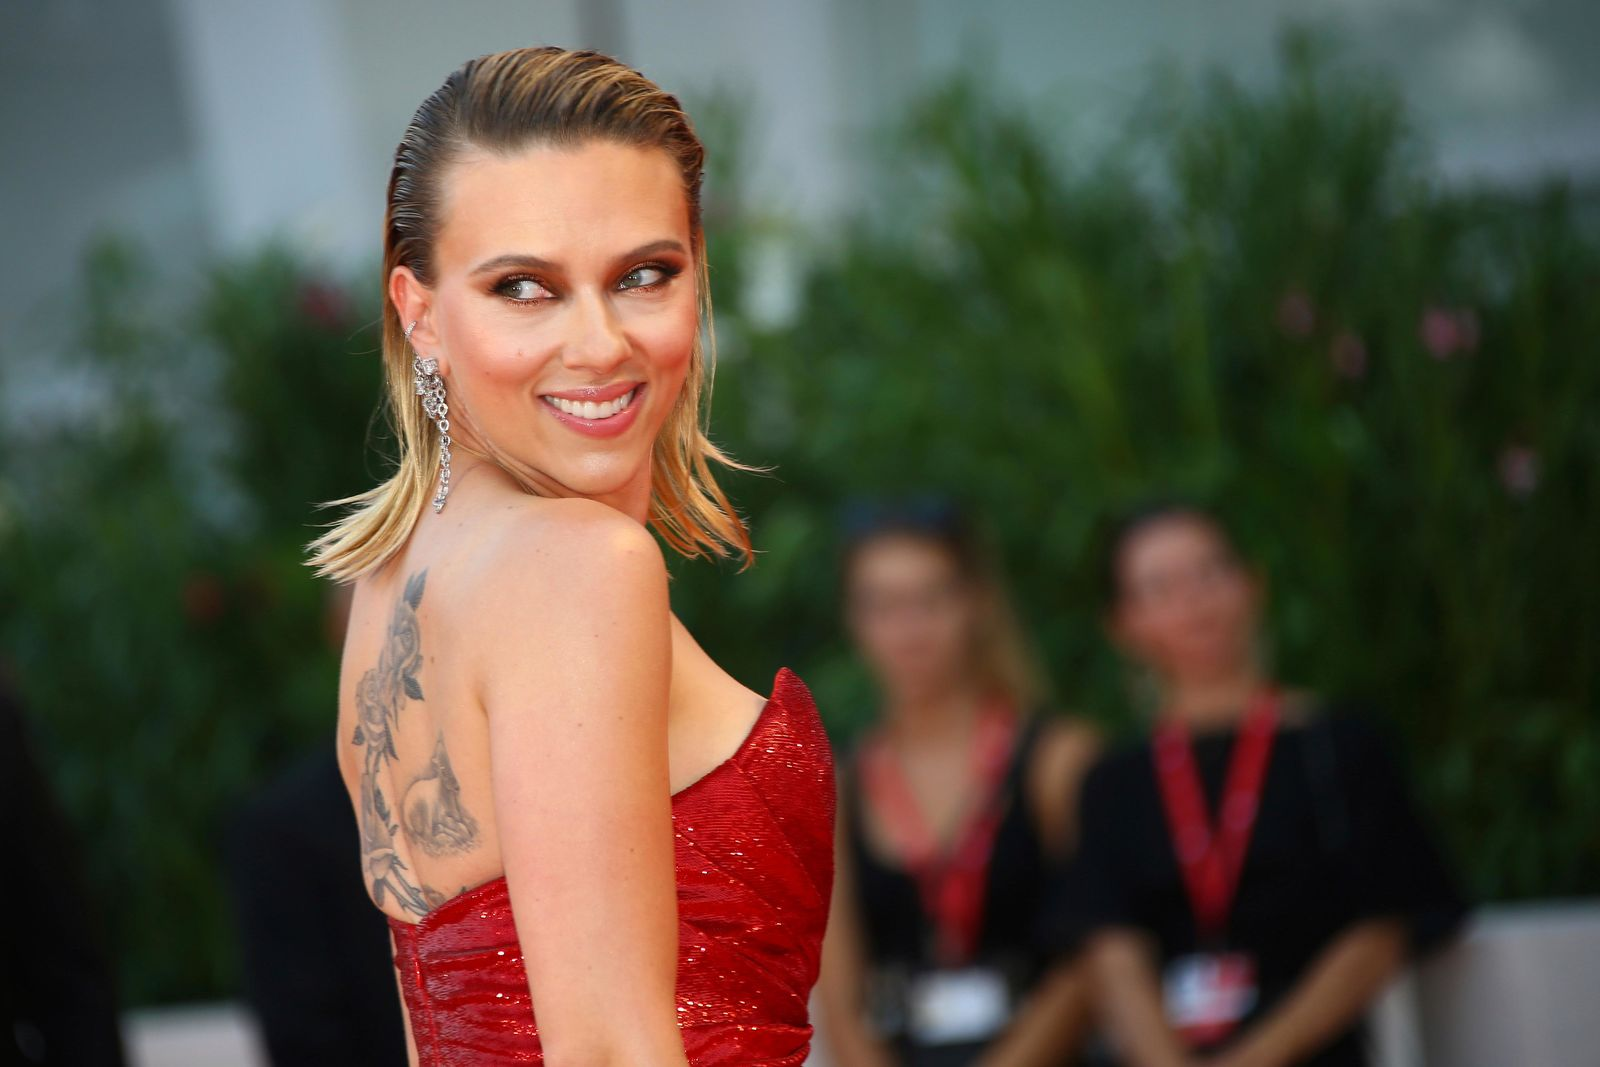 Actress Scarlett Johansson poses for photographers upon arrival at the premiere of the film 'Marriage Story' at the 76th edition of the Venice Film Festival, Venice, Italy, Thursday, Aug. 29, 2019. (Photo by Joel C Ryan/Invision/AP)